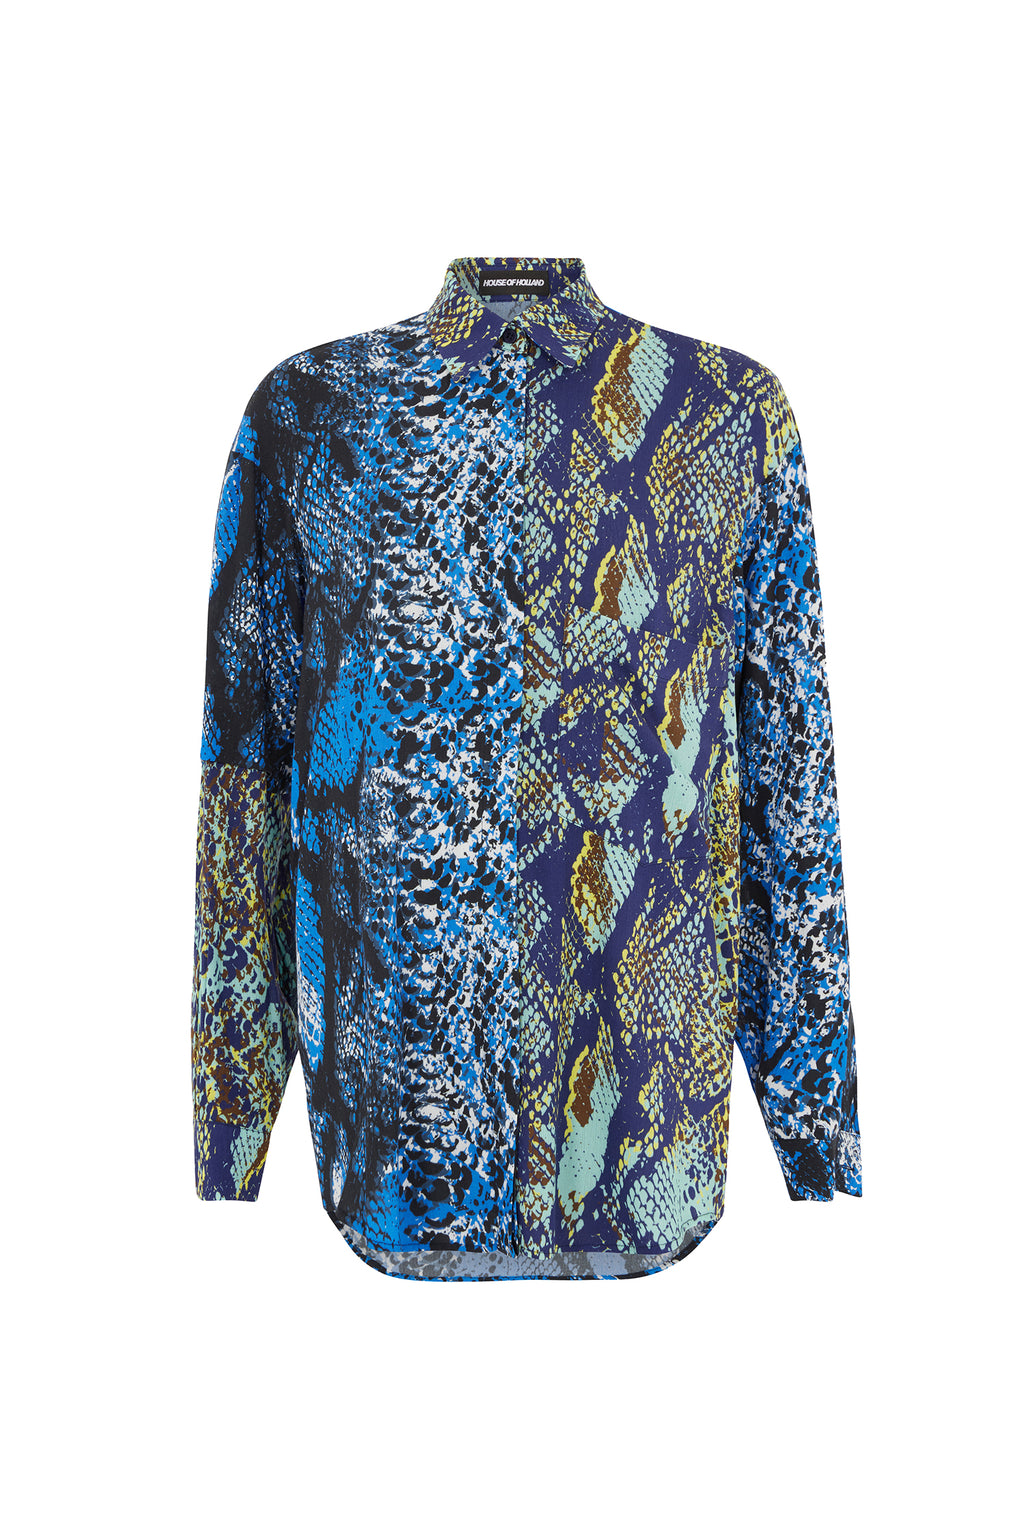 Asymmetric Double Snake Print Viscose Shirt by House of Holland